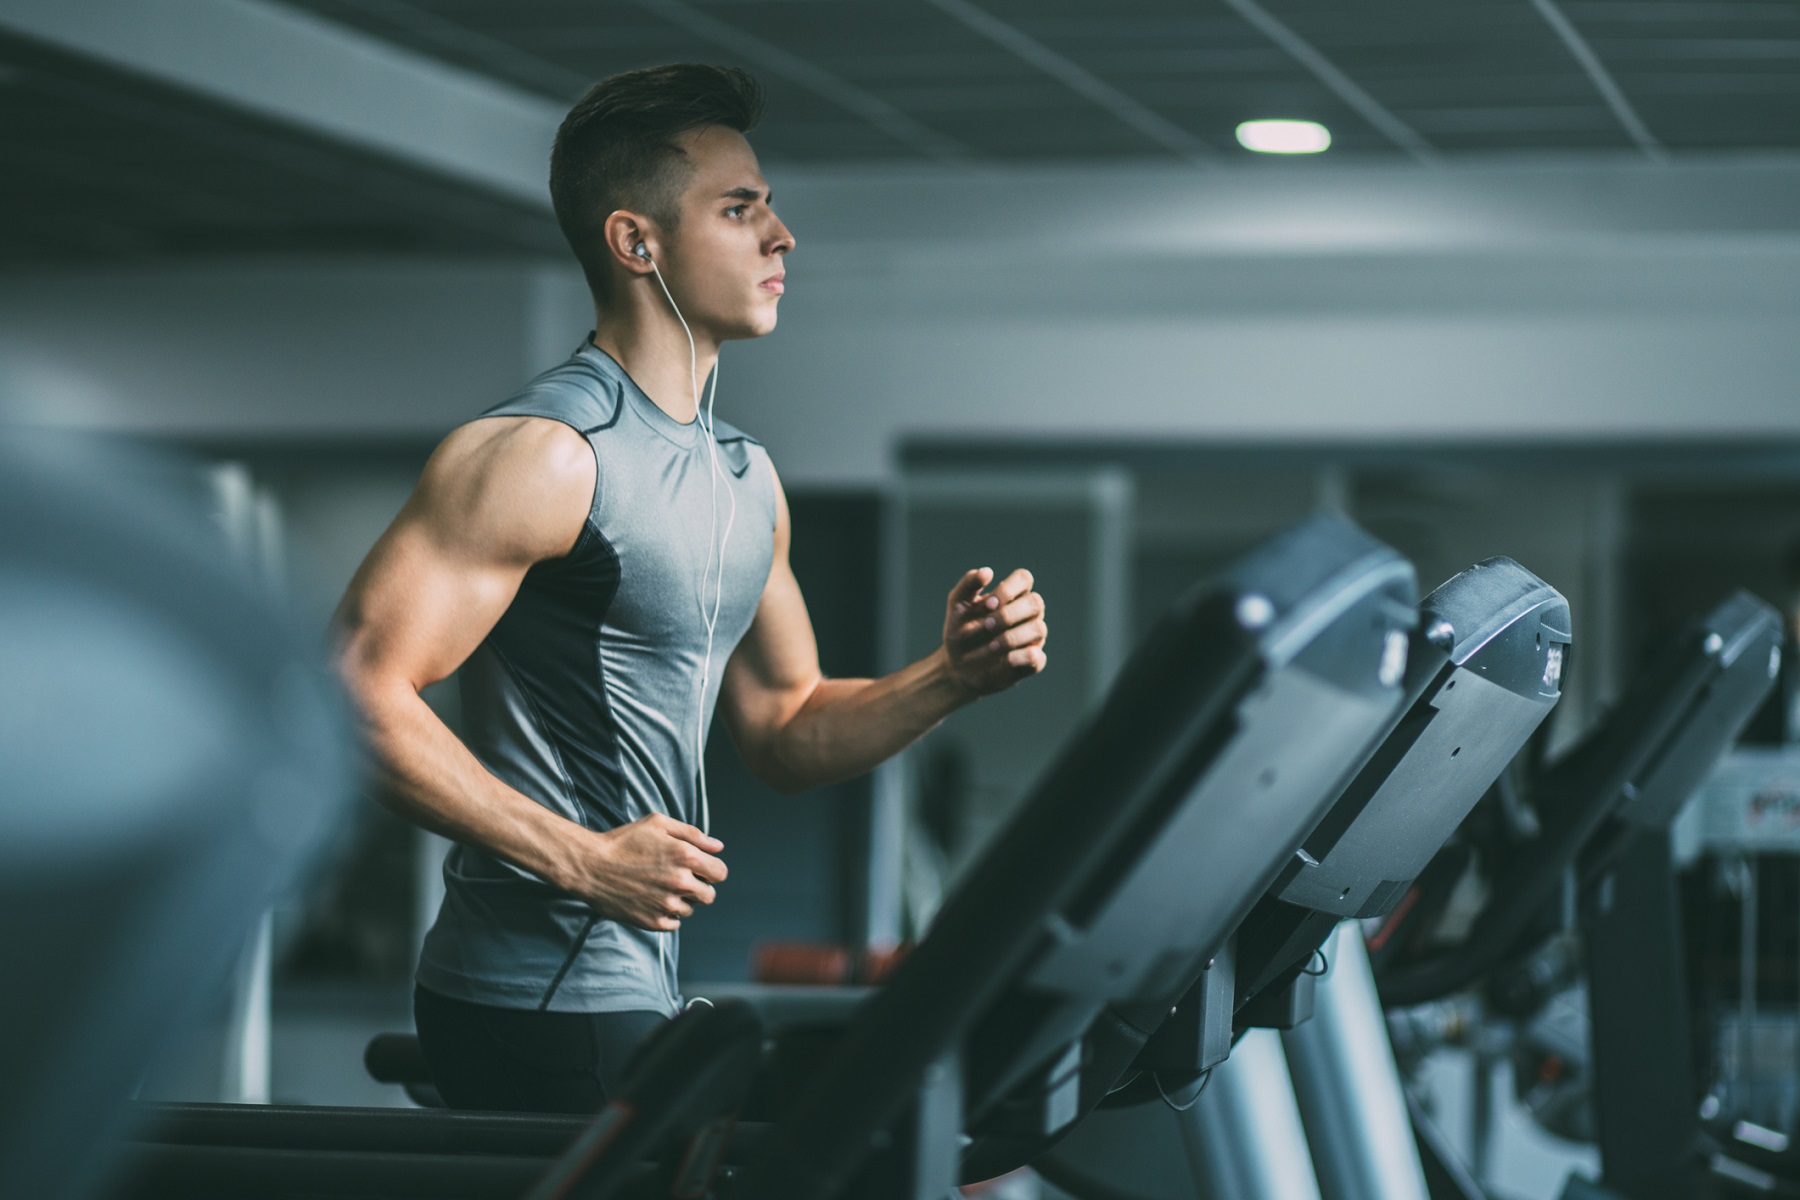 Generic photo of a man on a treadmill at the gym (ThinkStock/PA)